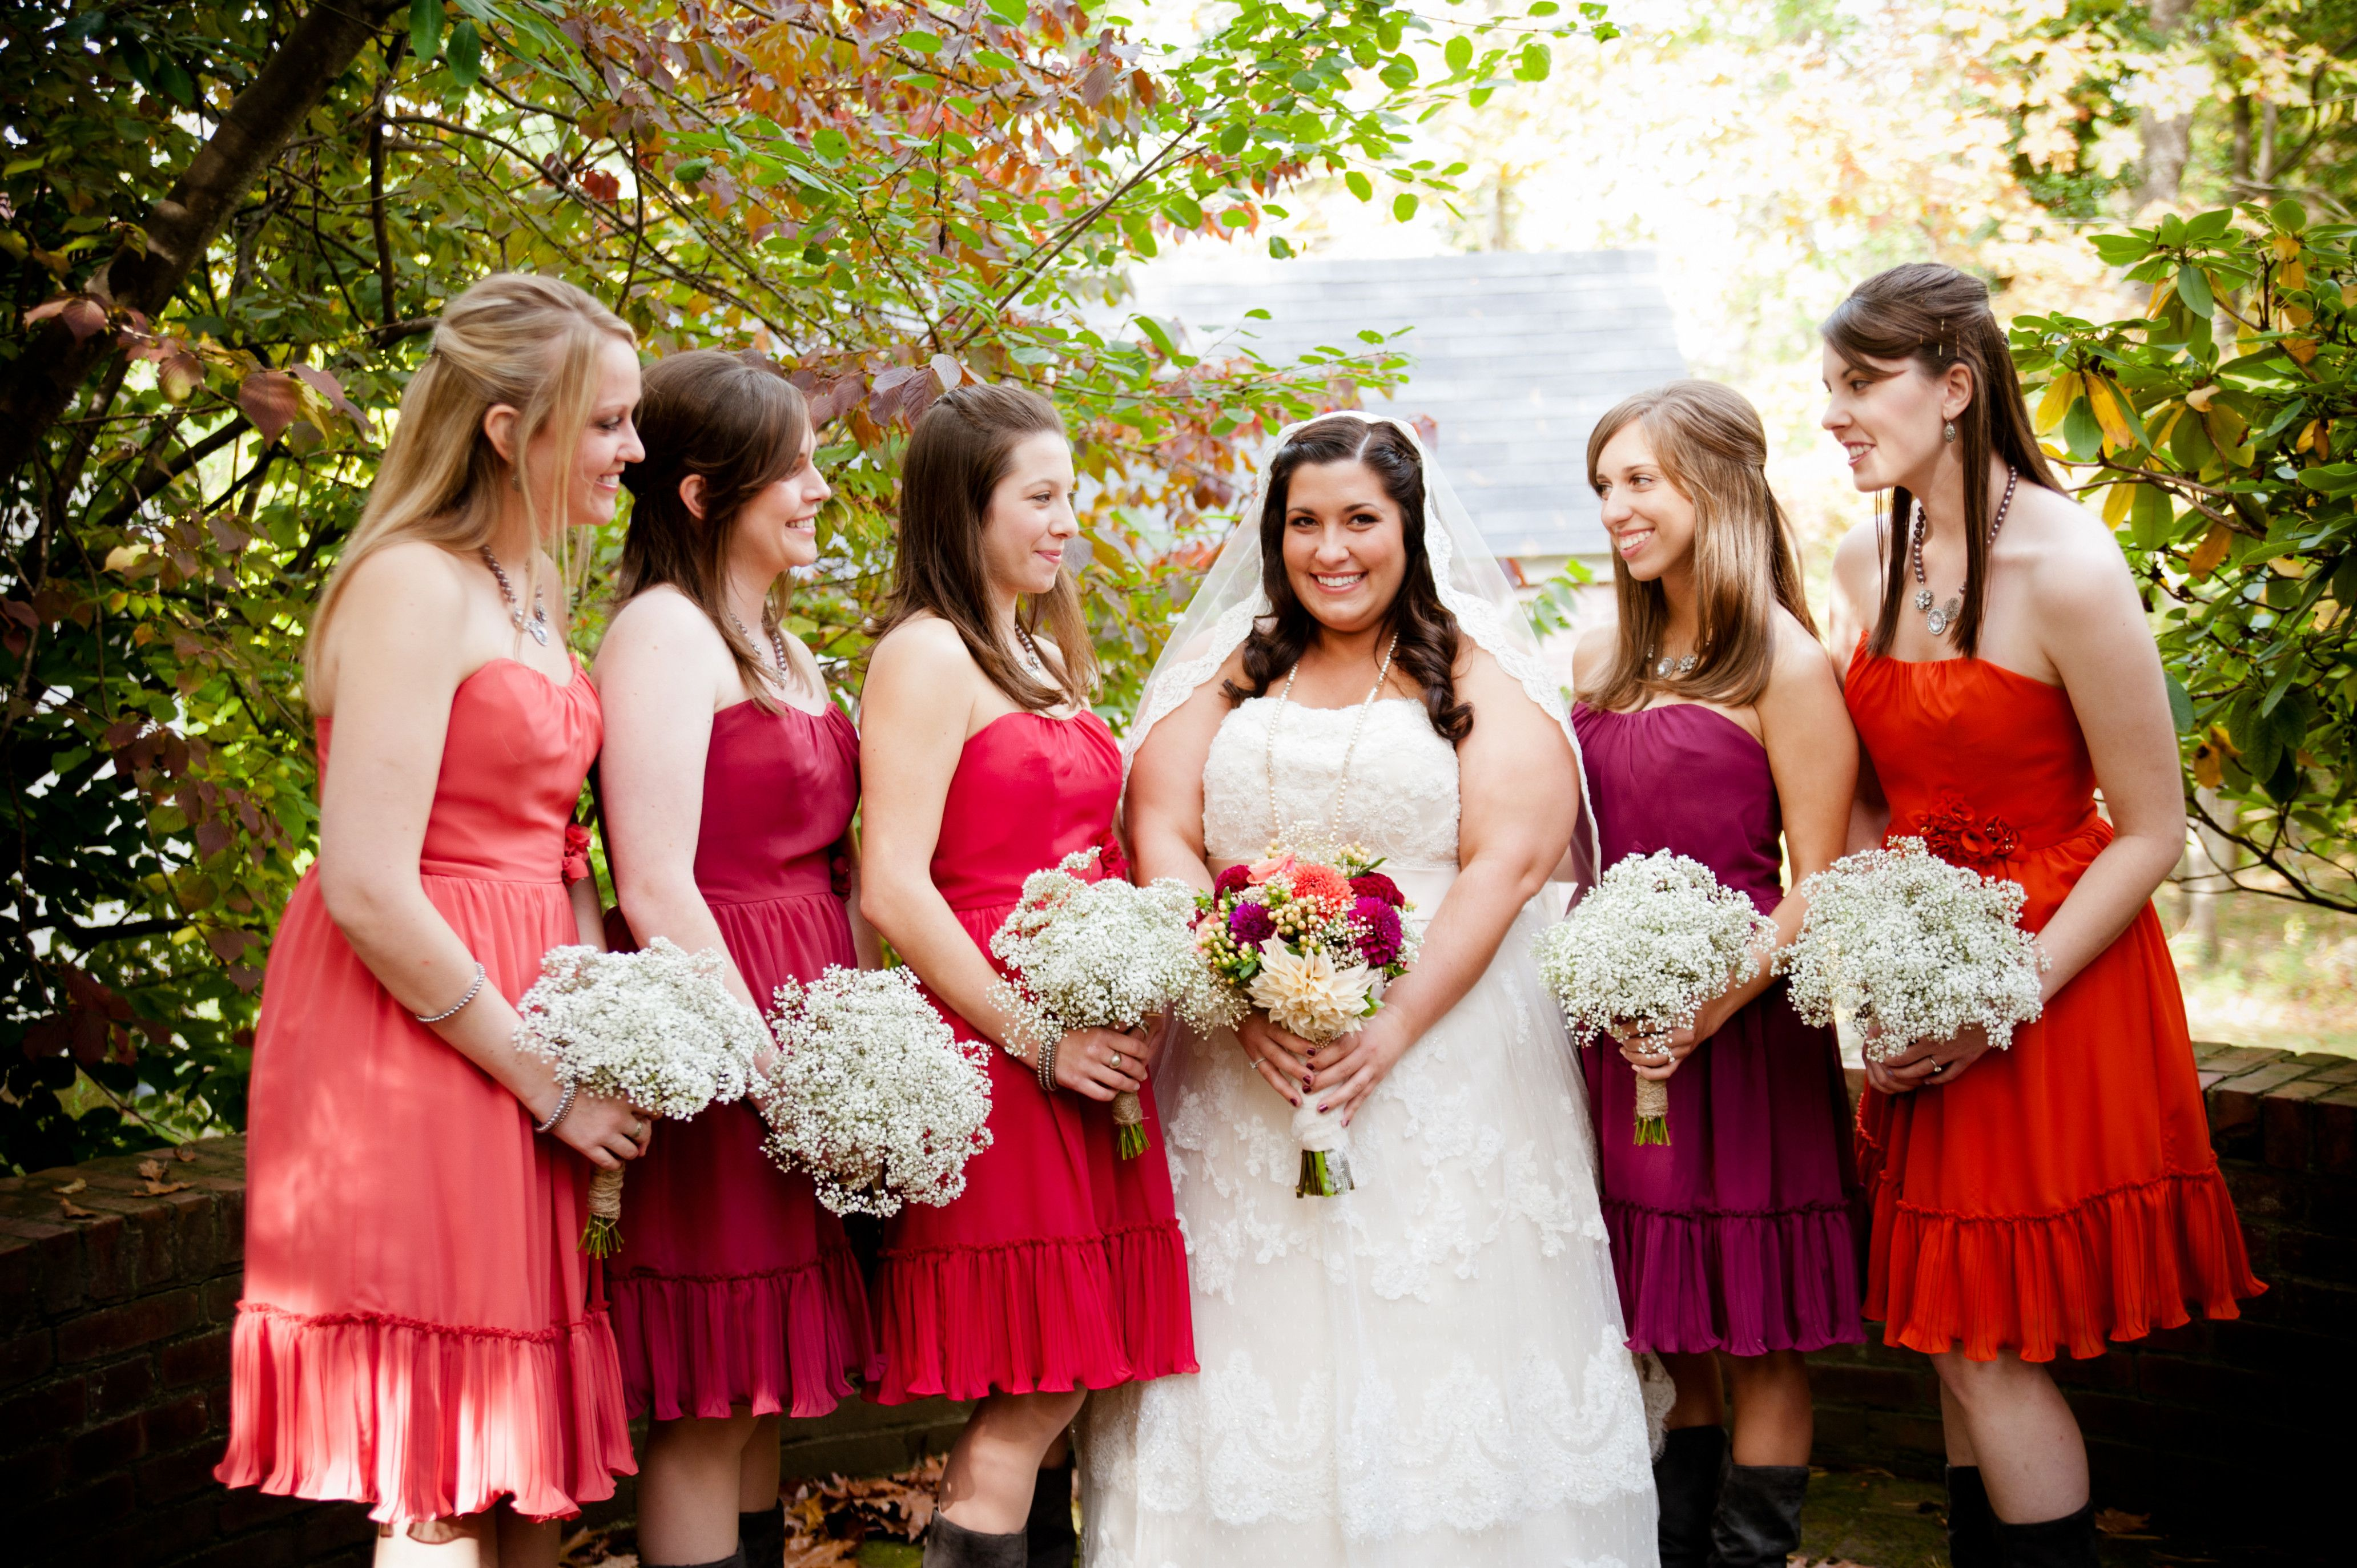 Wedding dresses with cowgirl boots  Orange Bridesmaid Dresses With Cowboy Boots Choice Image